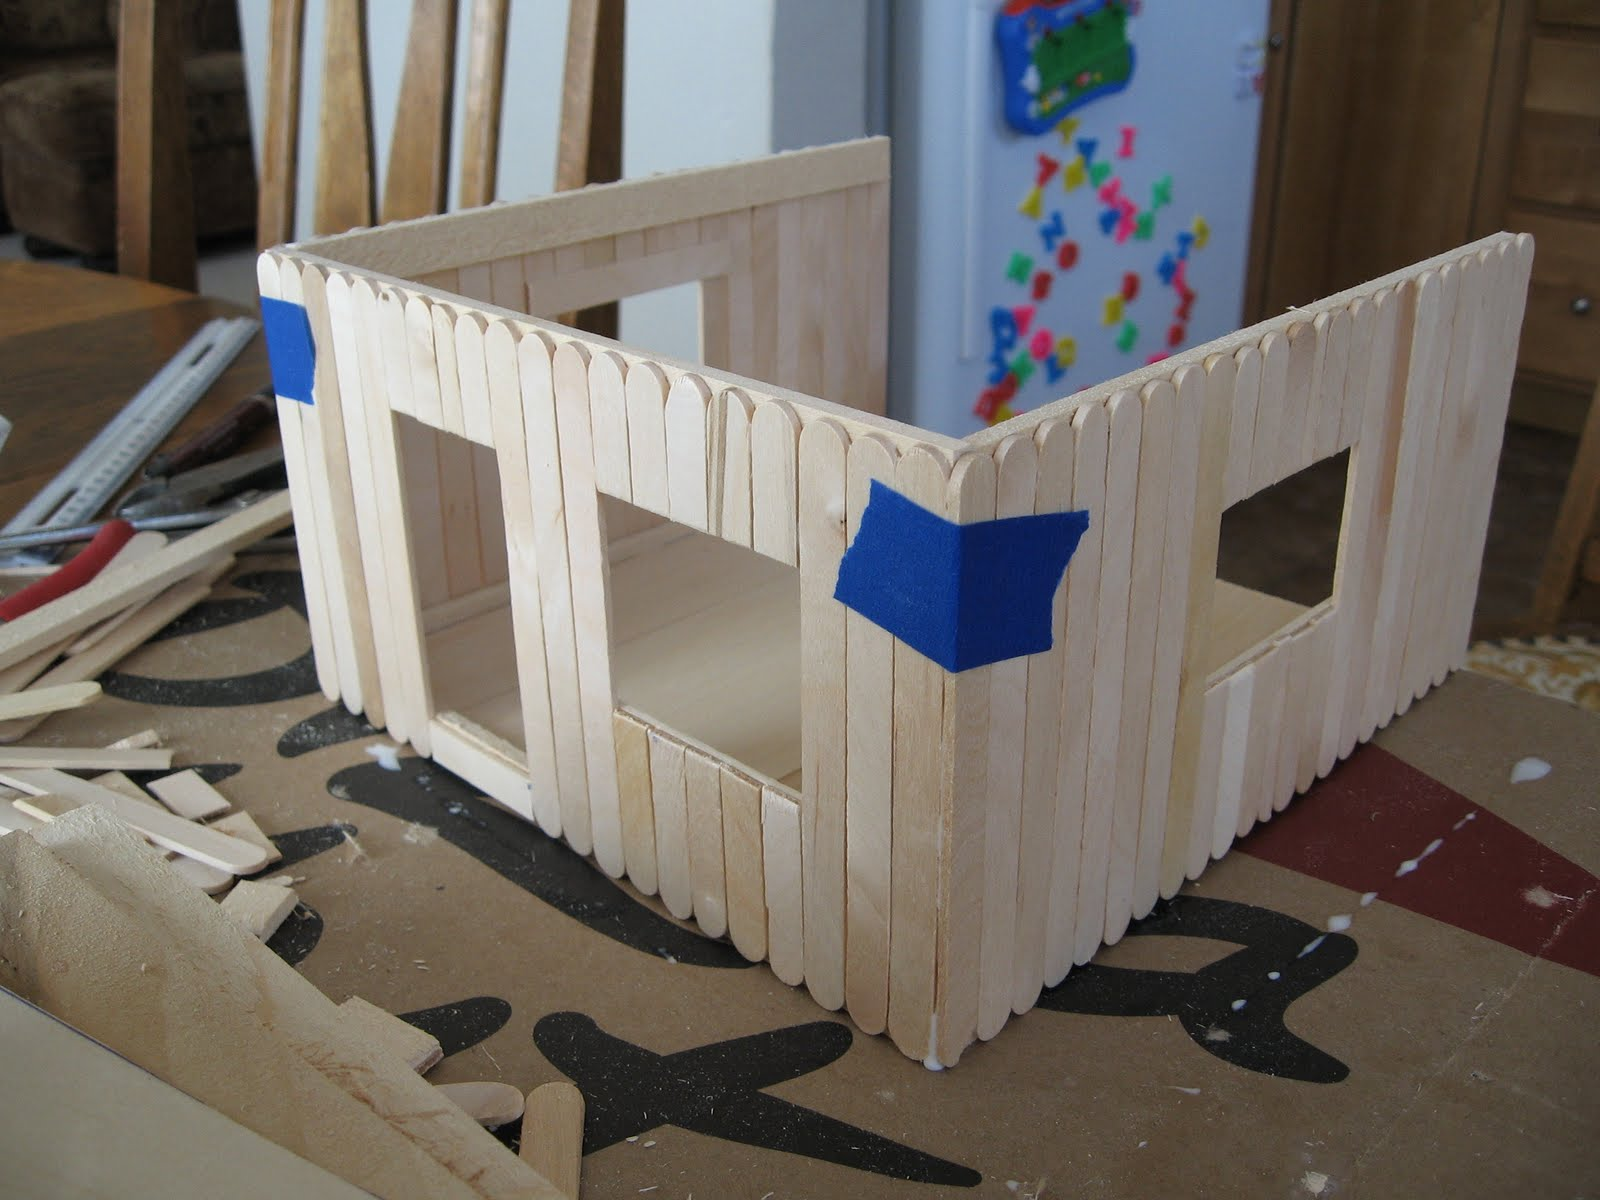 House popsicle sticks plans - House interior